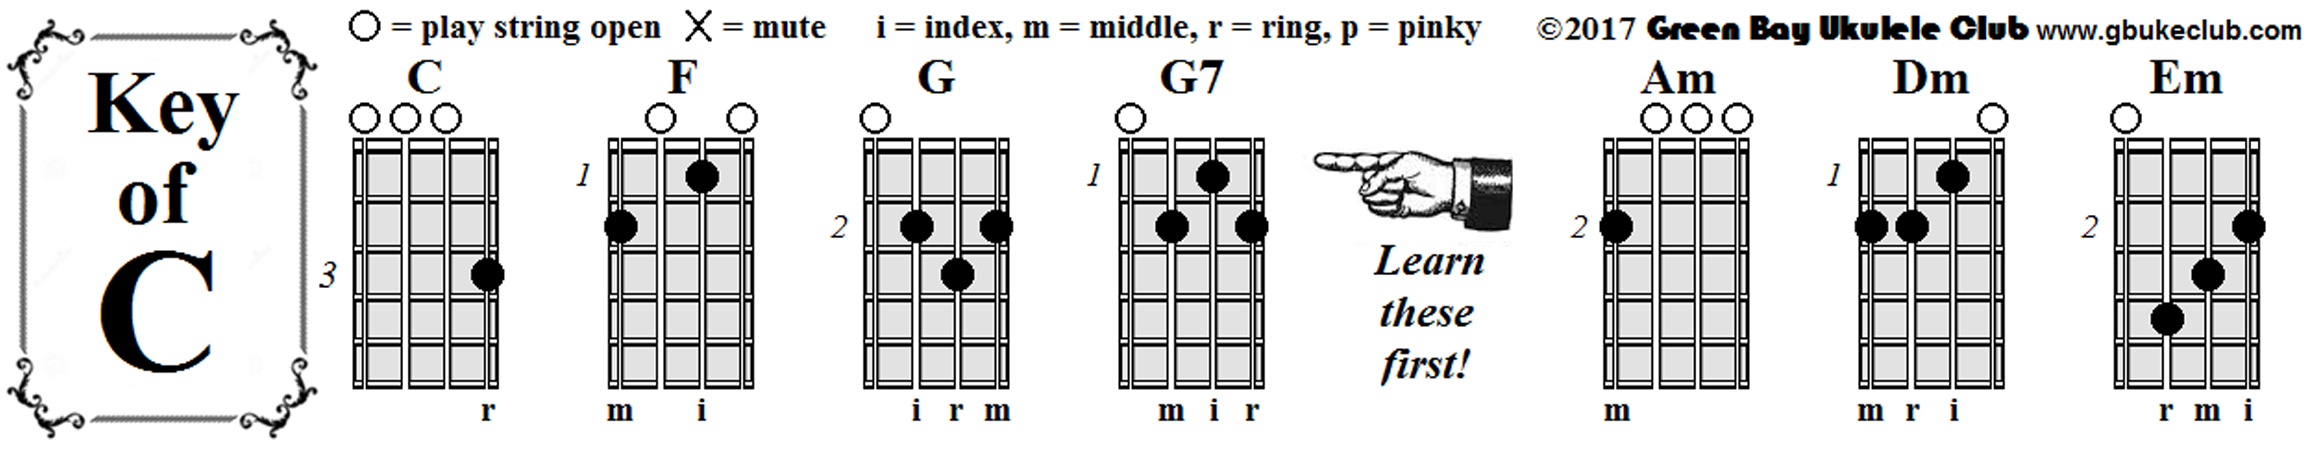 Free easy to play ukulele sheet music downloads for beginners gb bookmark chords key of c hexwebz Image collections